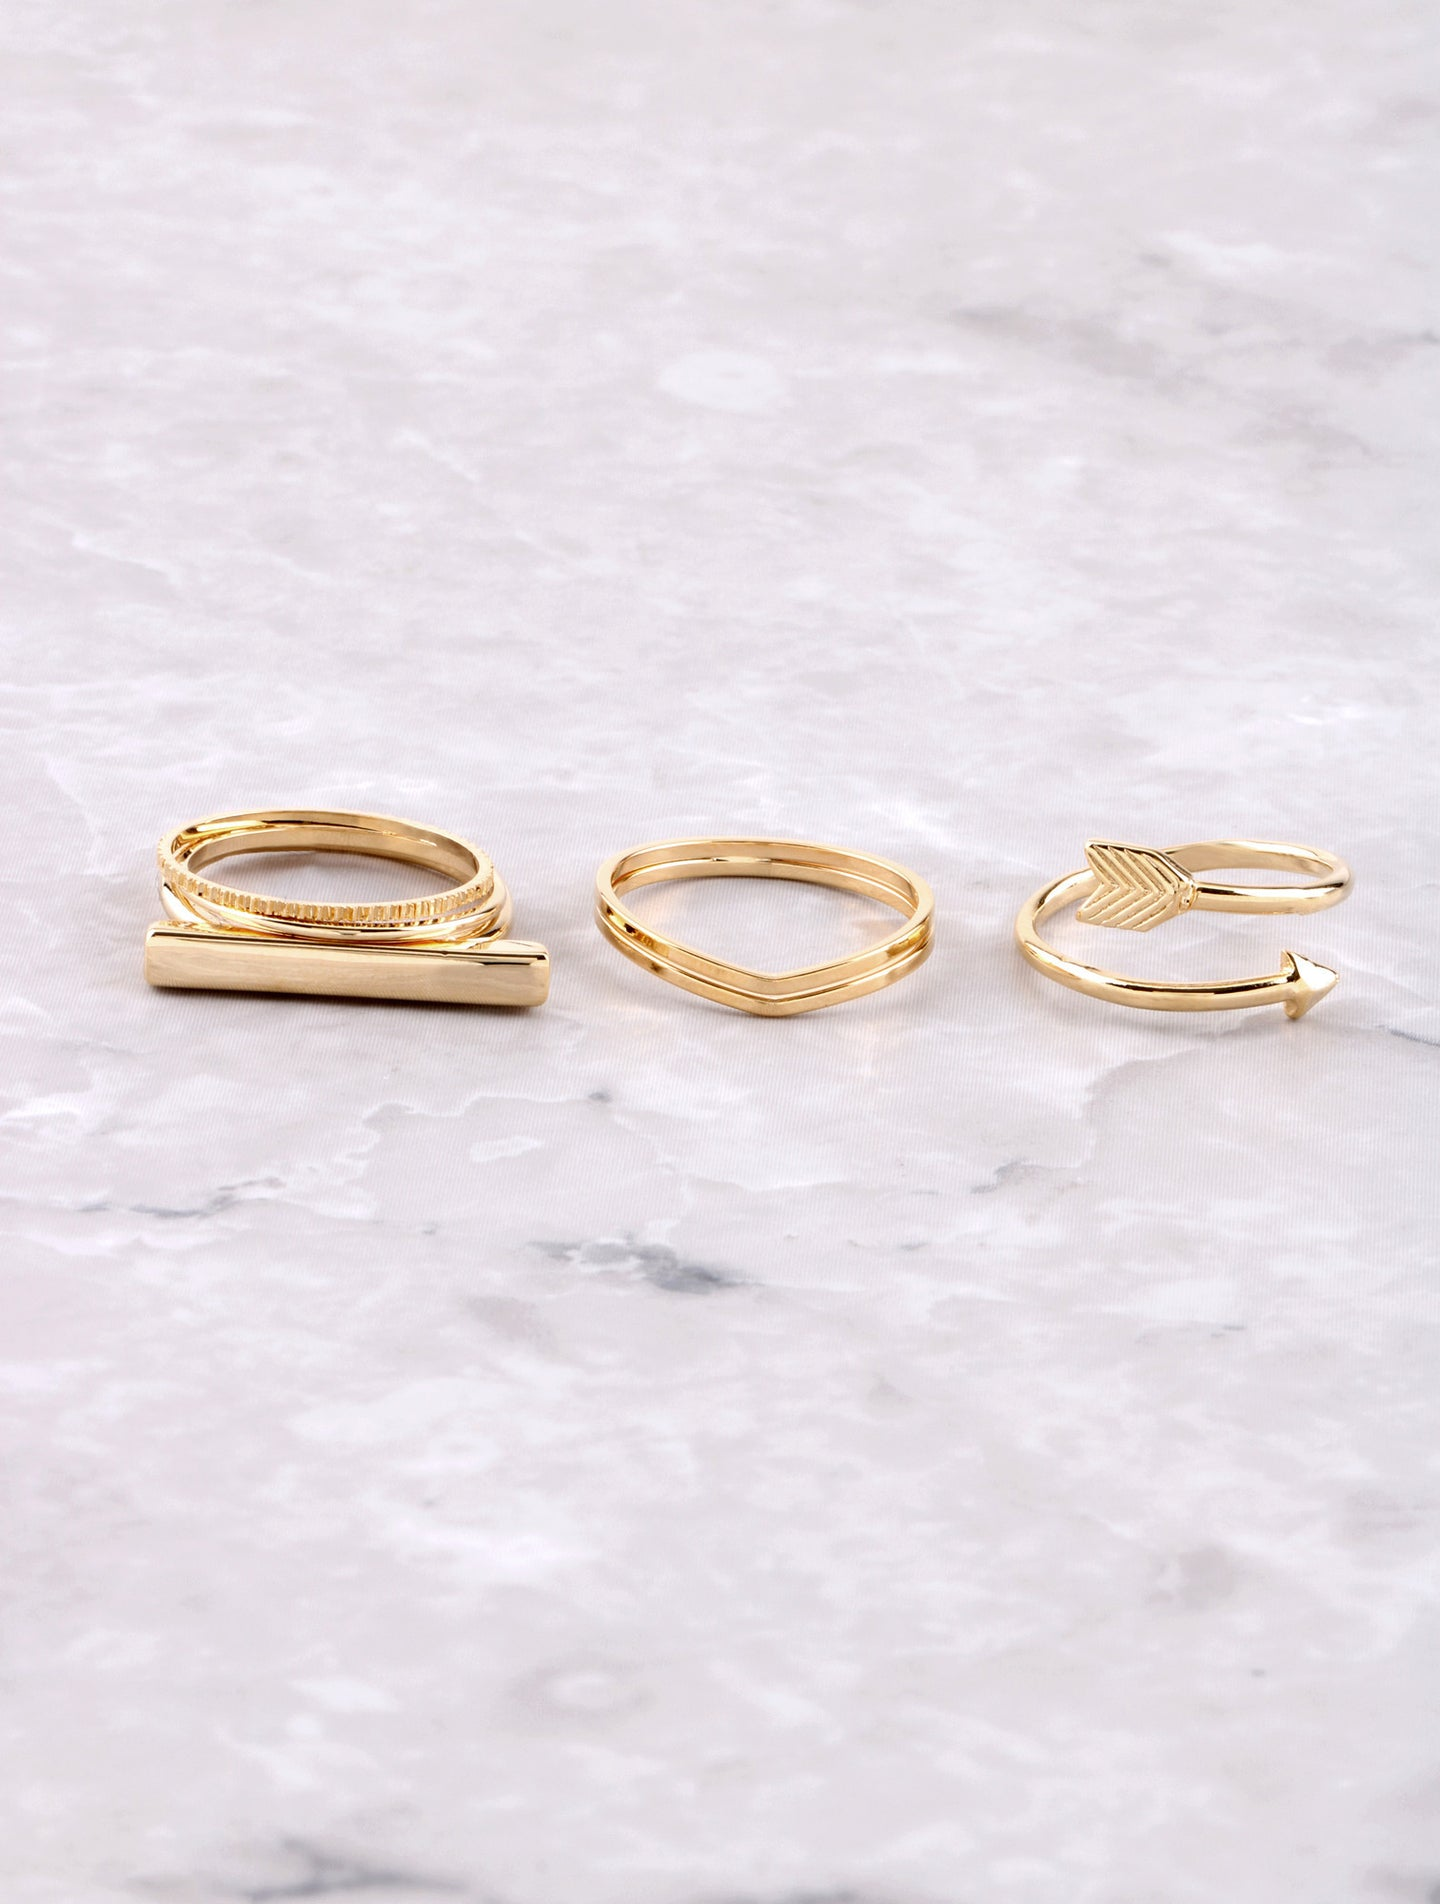 Minimalist Ring Set Anarchy Street Gold